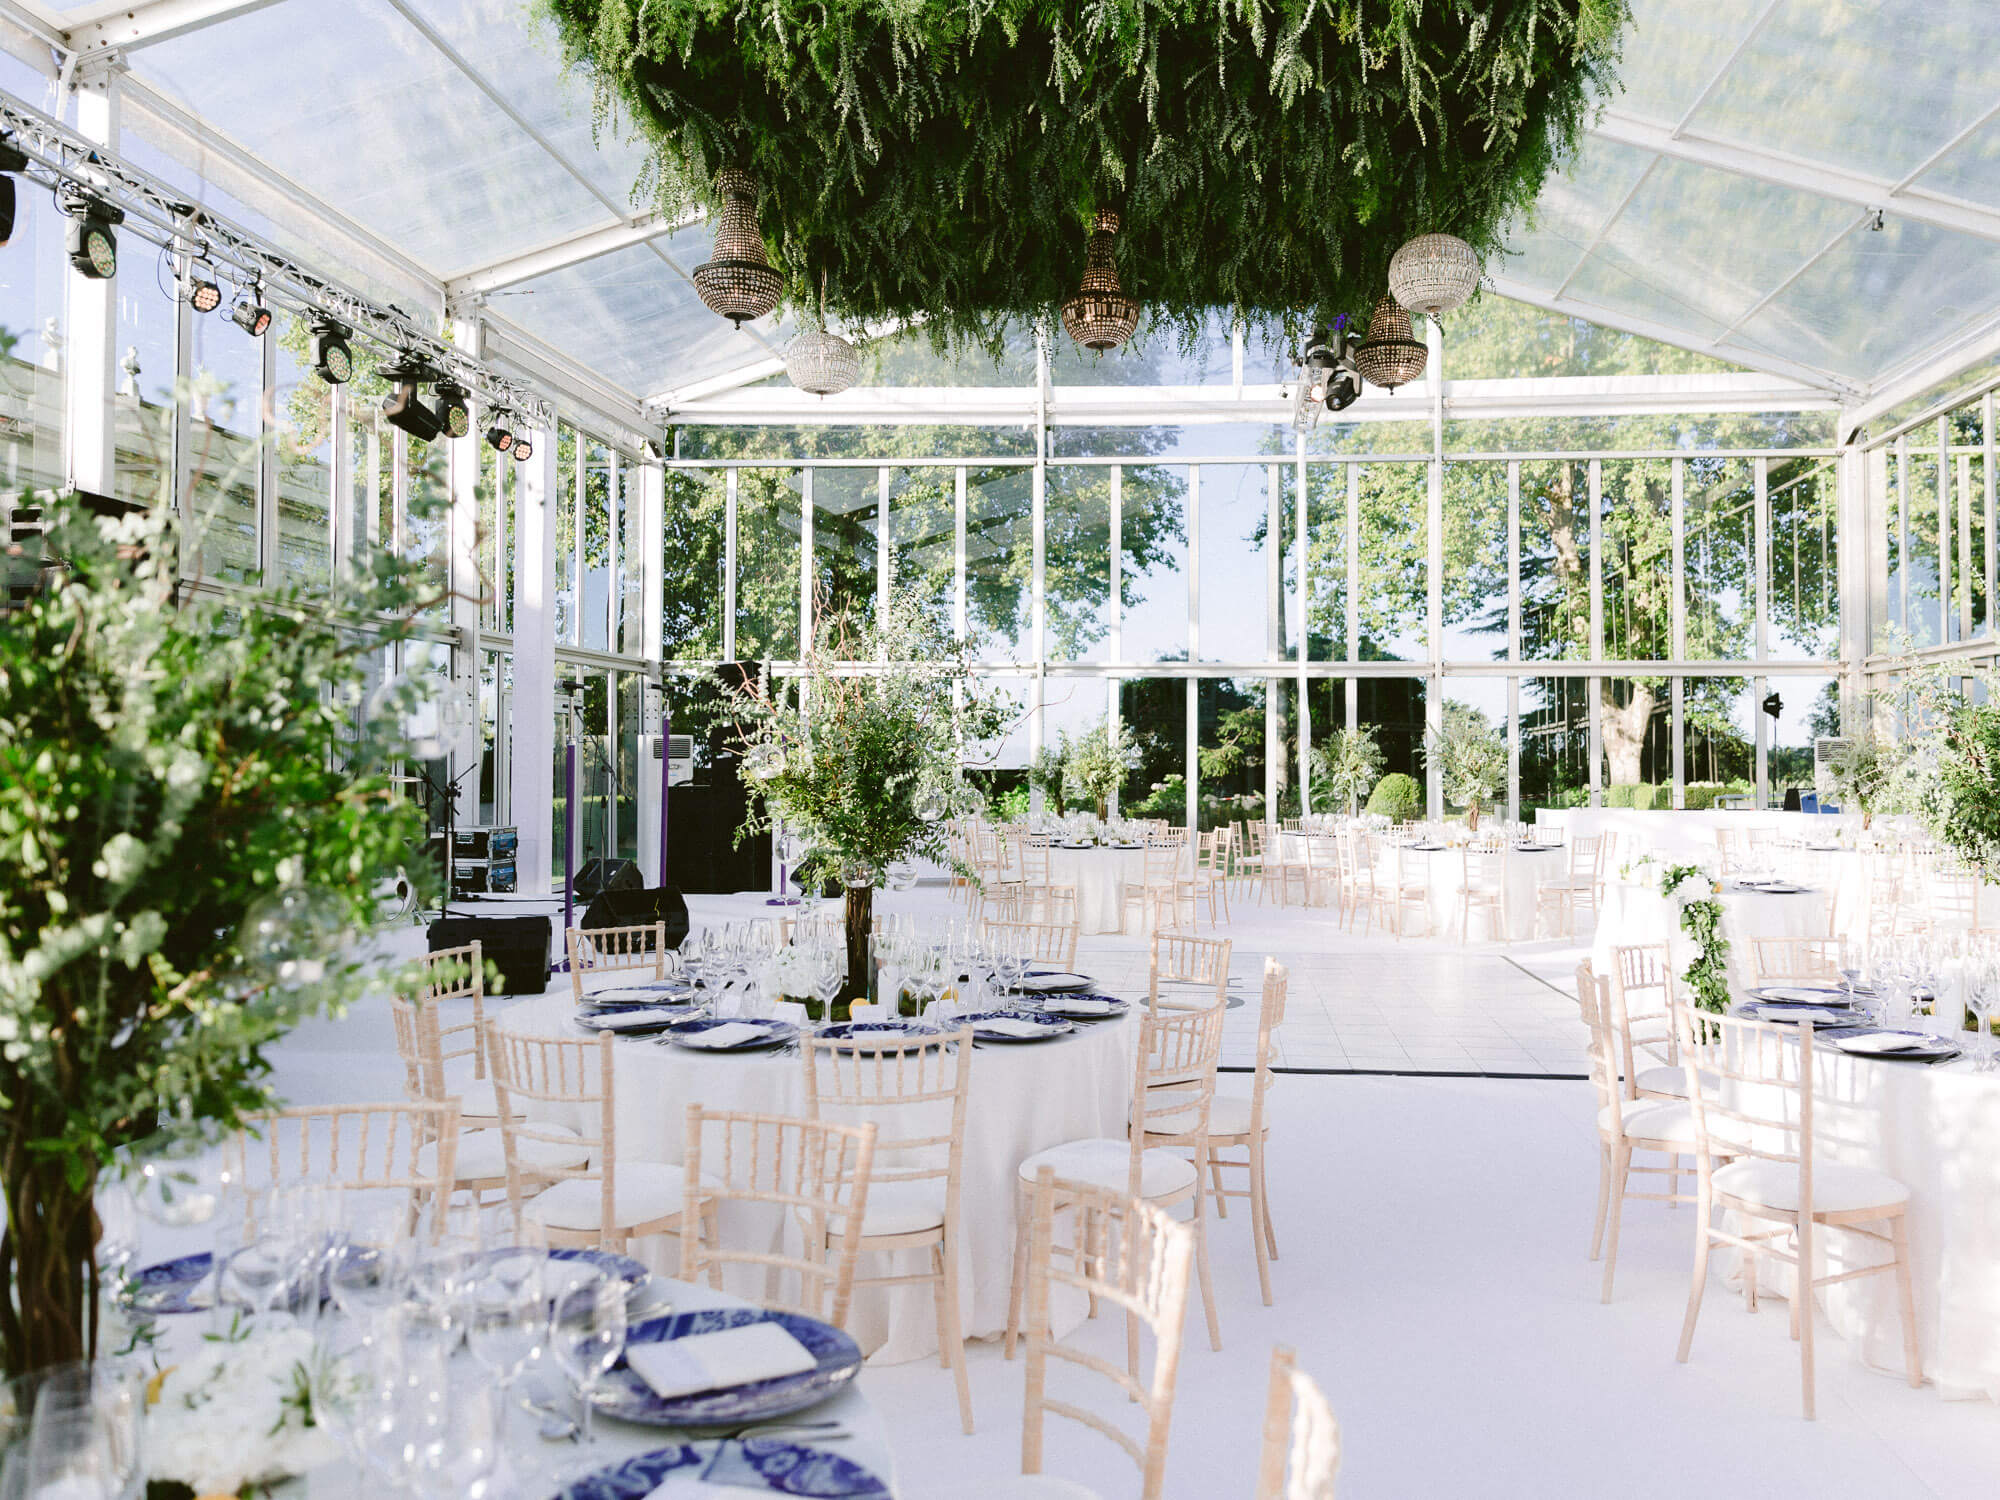 wedding reception dinner in transparent tent and greenery ceiling with crystal chandeliers by Portugal Wedding Photographer